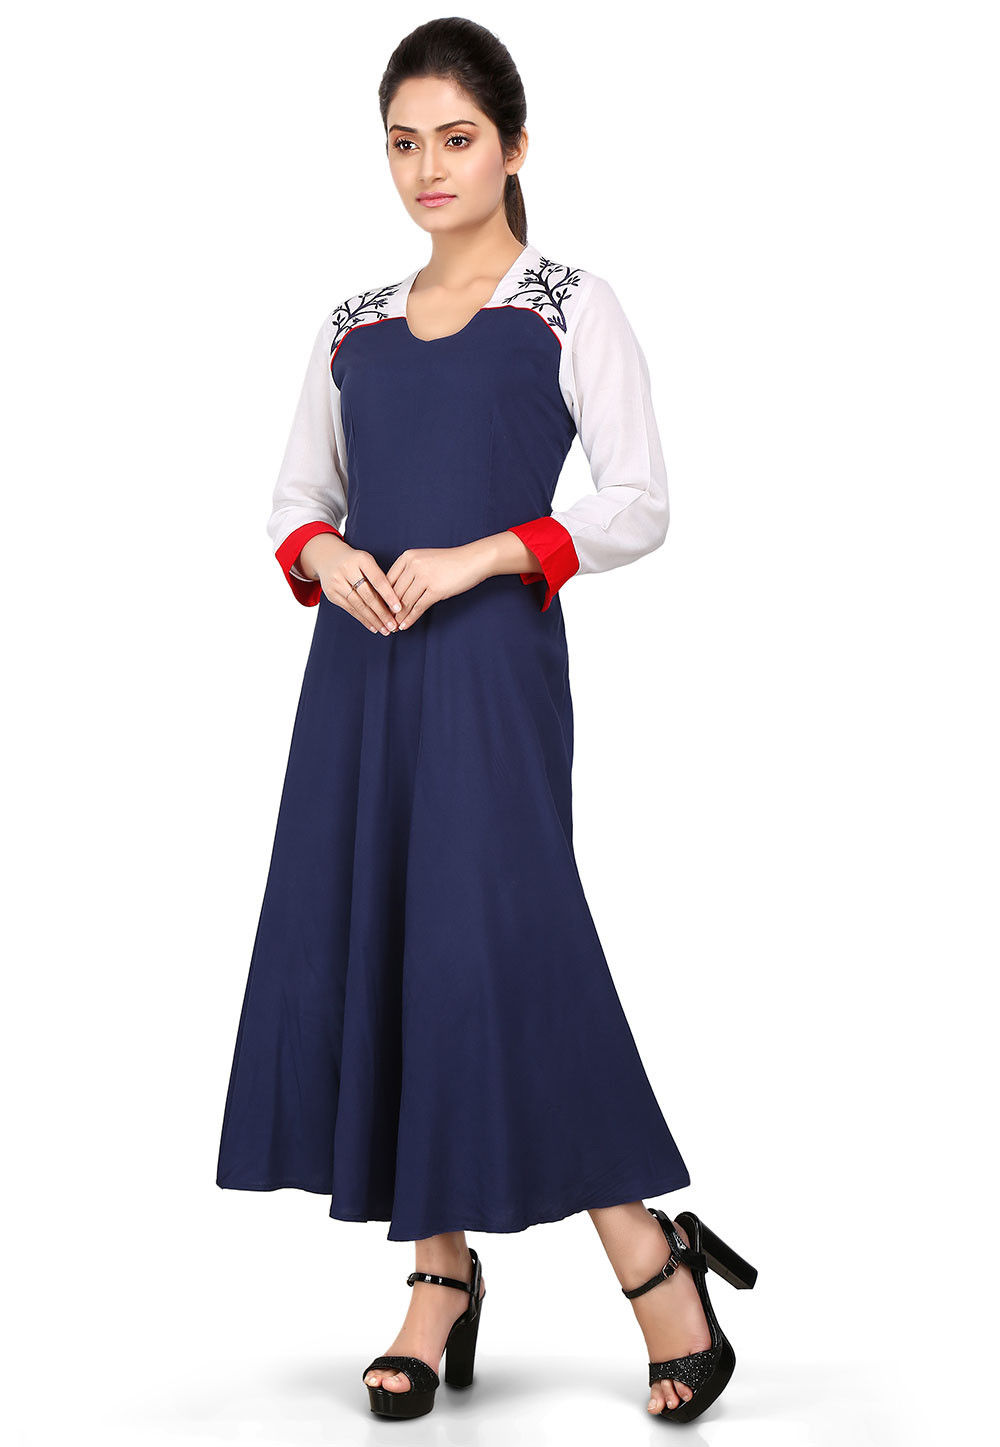 Plain Viscose Dress in White and Navy